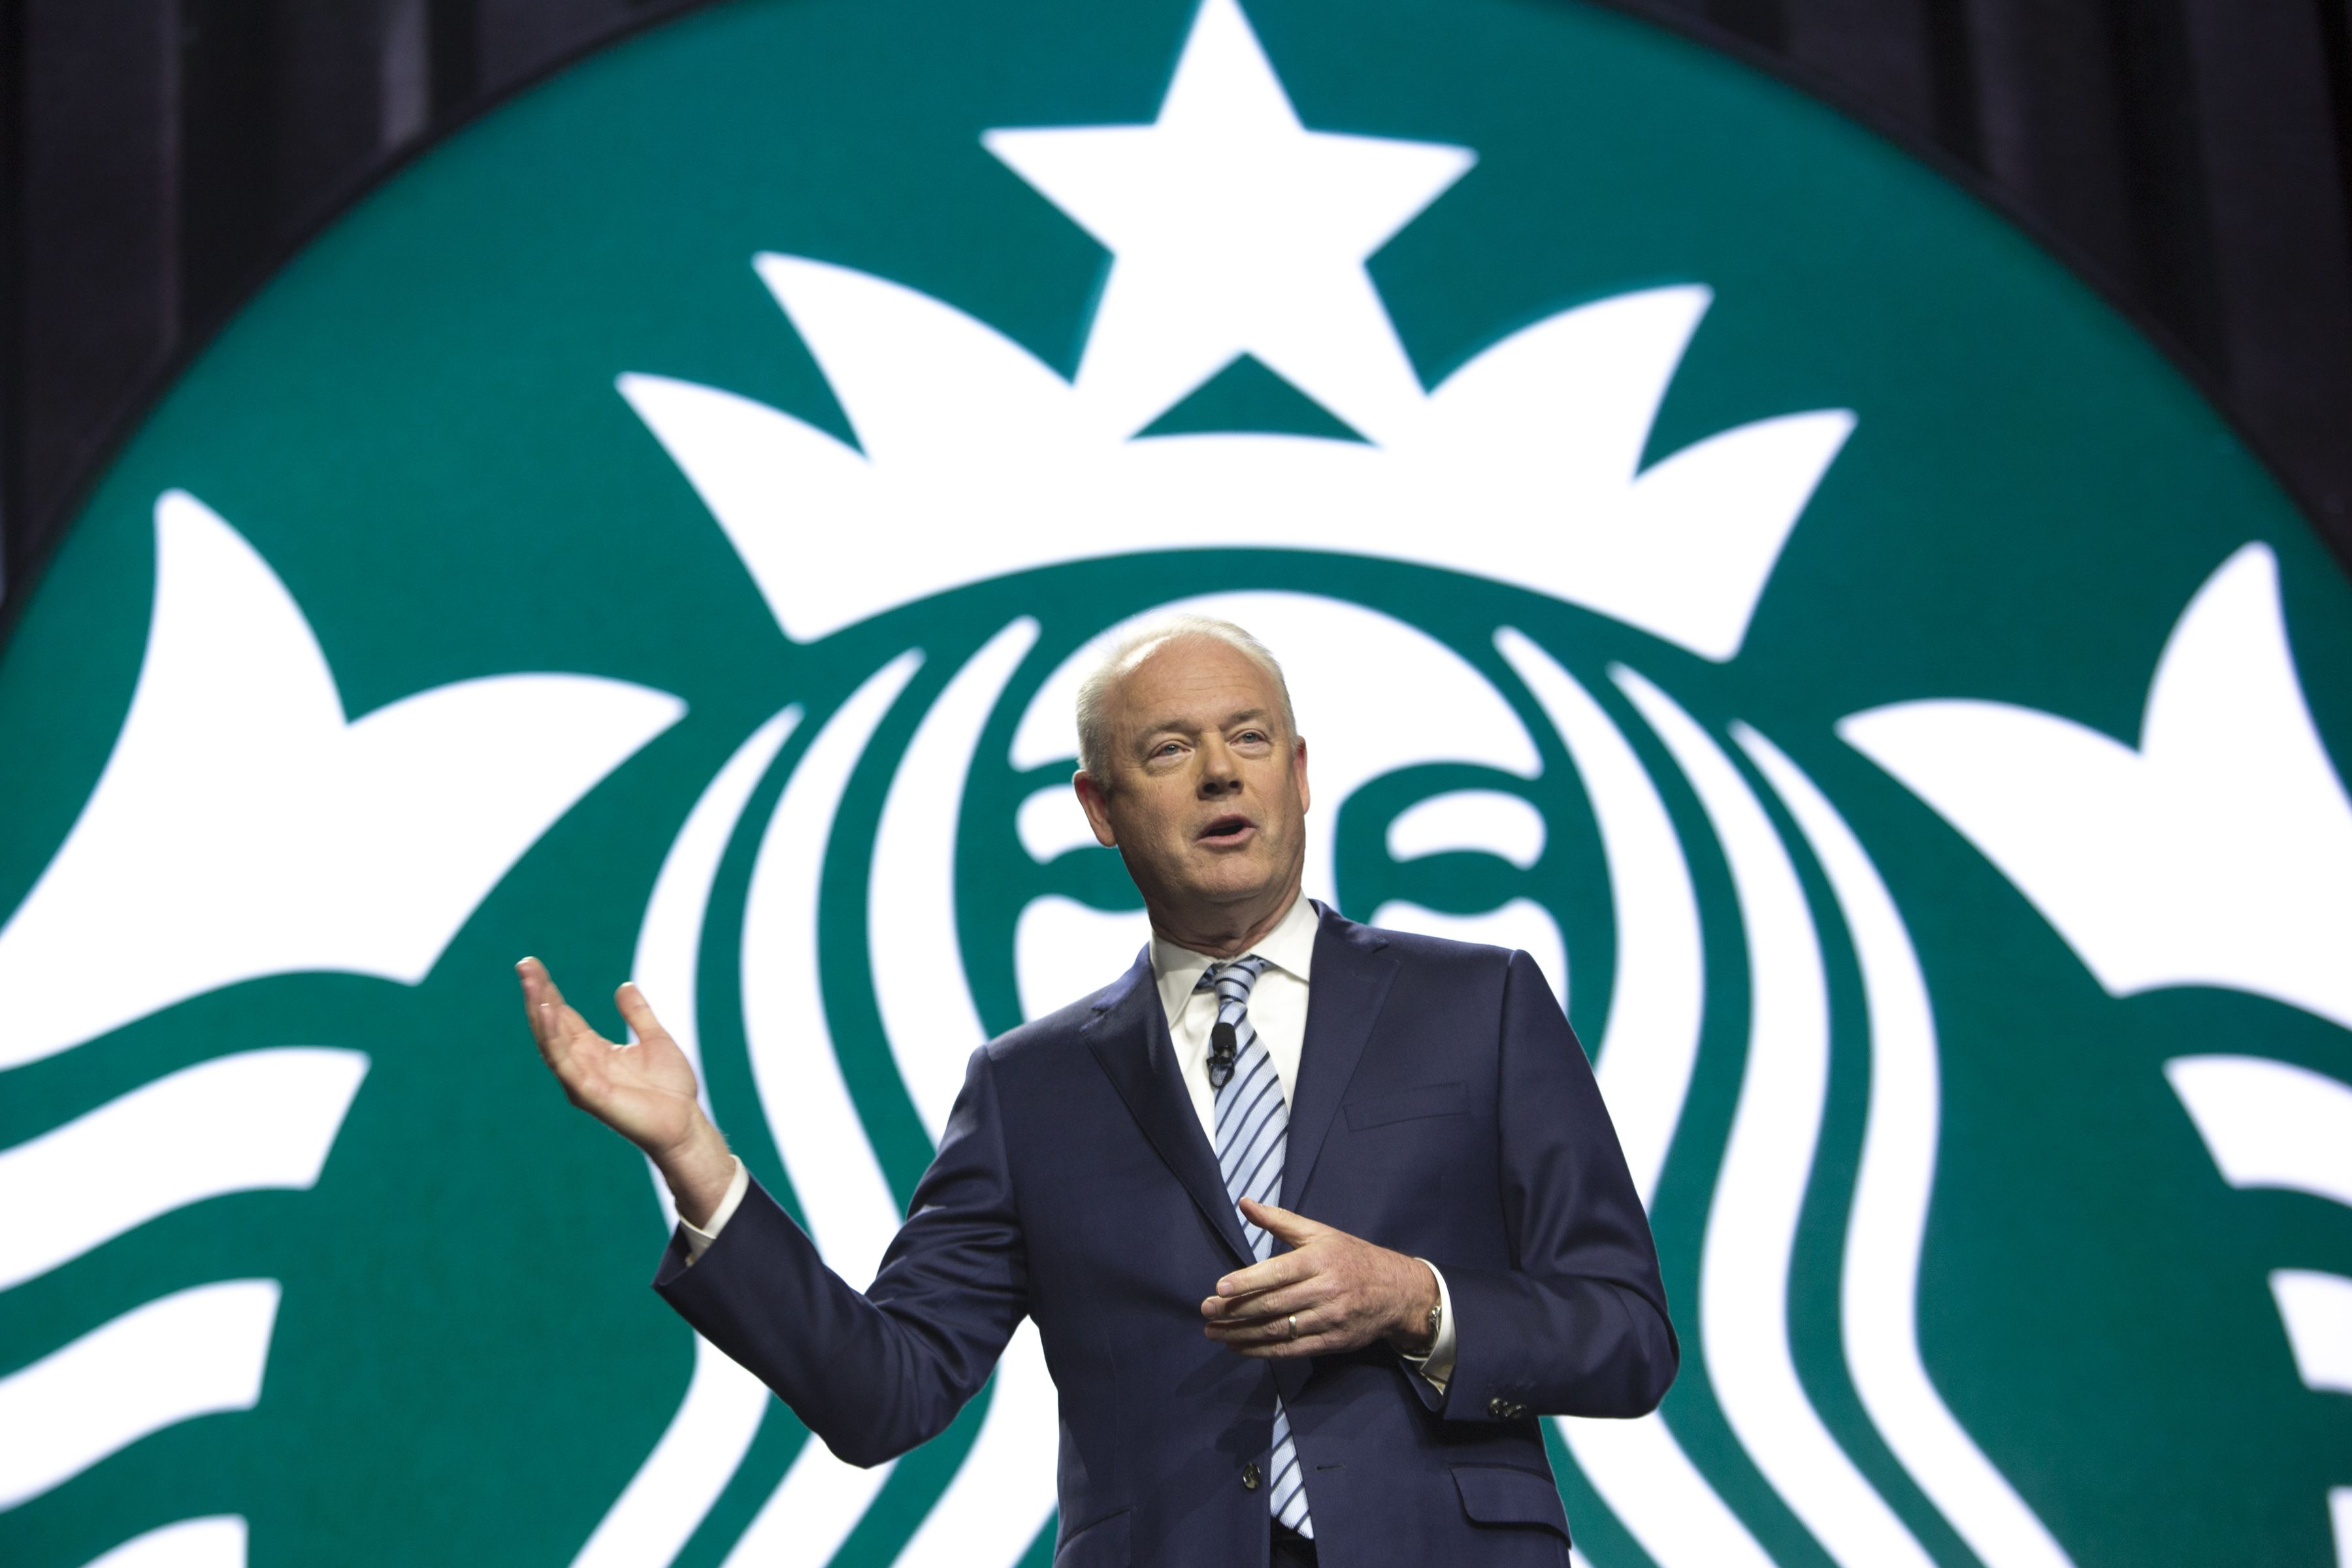 Starbucks CEO calls Chinese rivals' use of discounts unsustainable